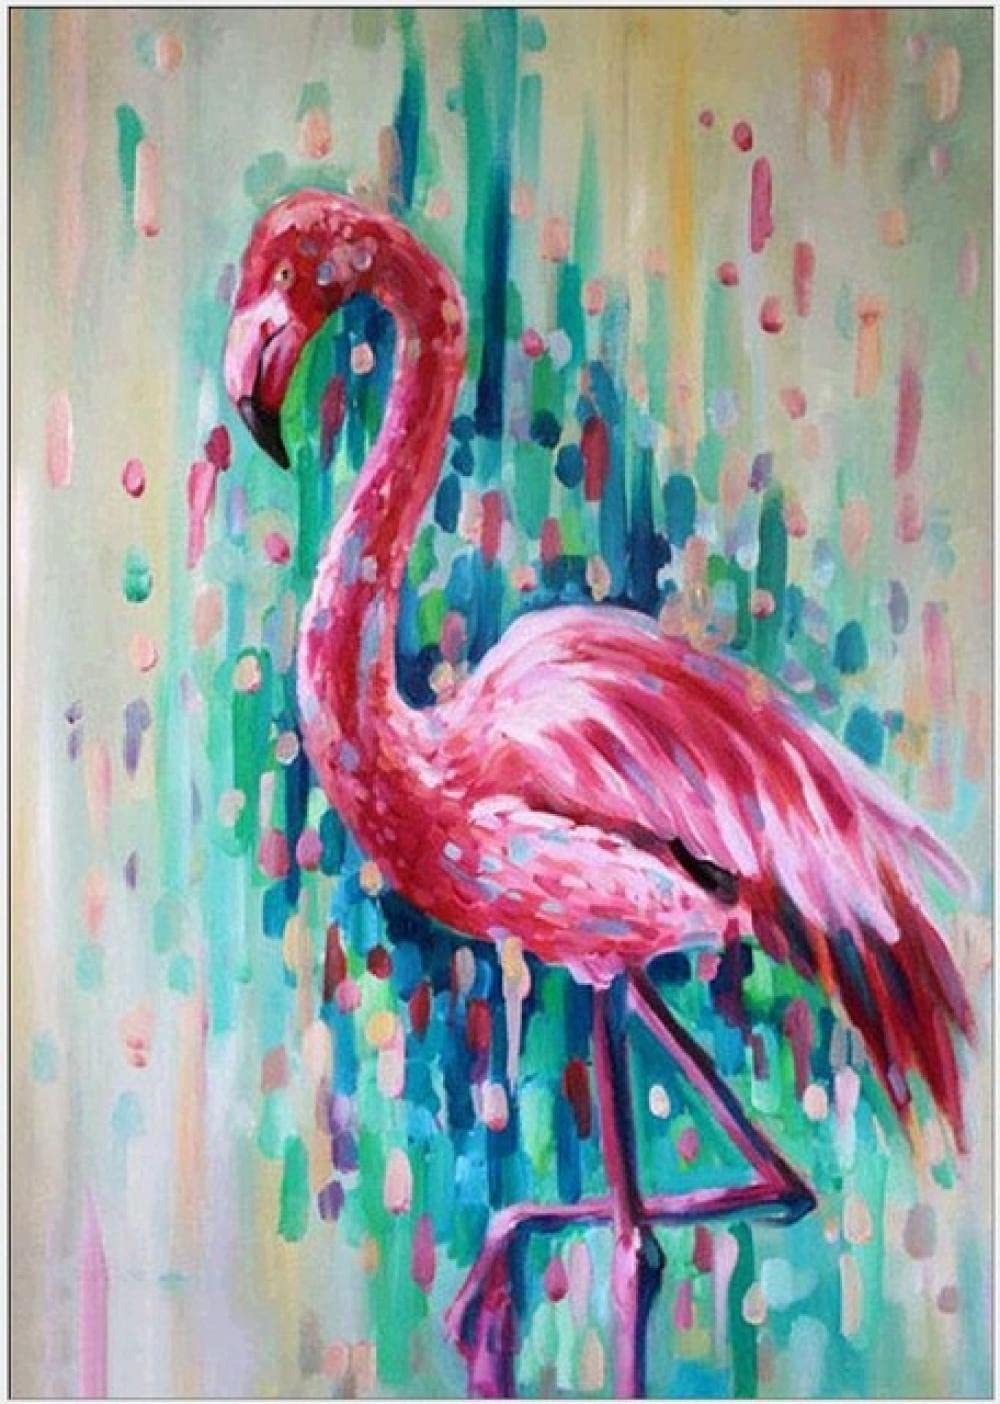 2000 Max 69% OFF Piece Puzzles -Pink Bird- Adults Sale special price Jigsaw for Enterta